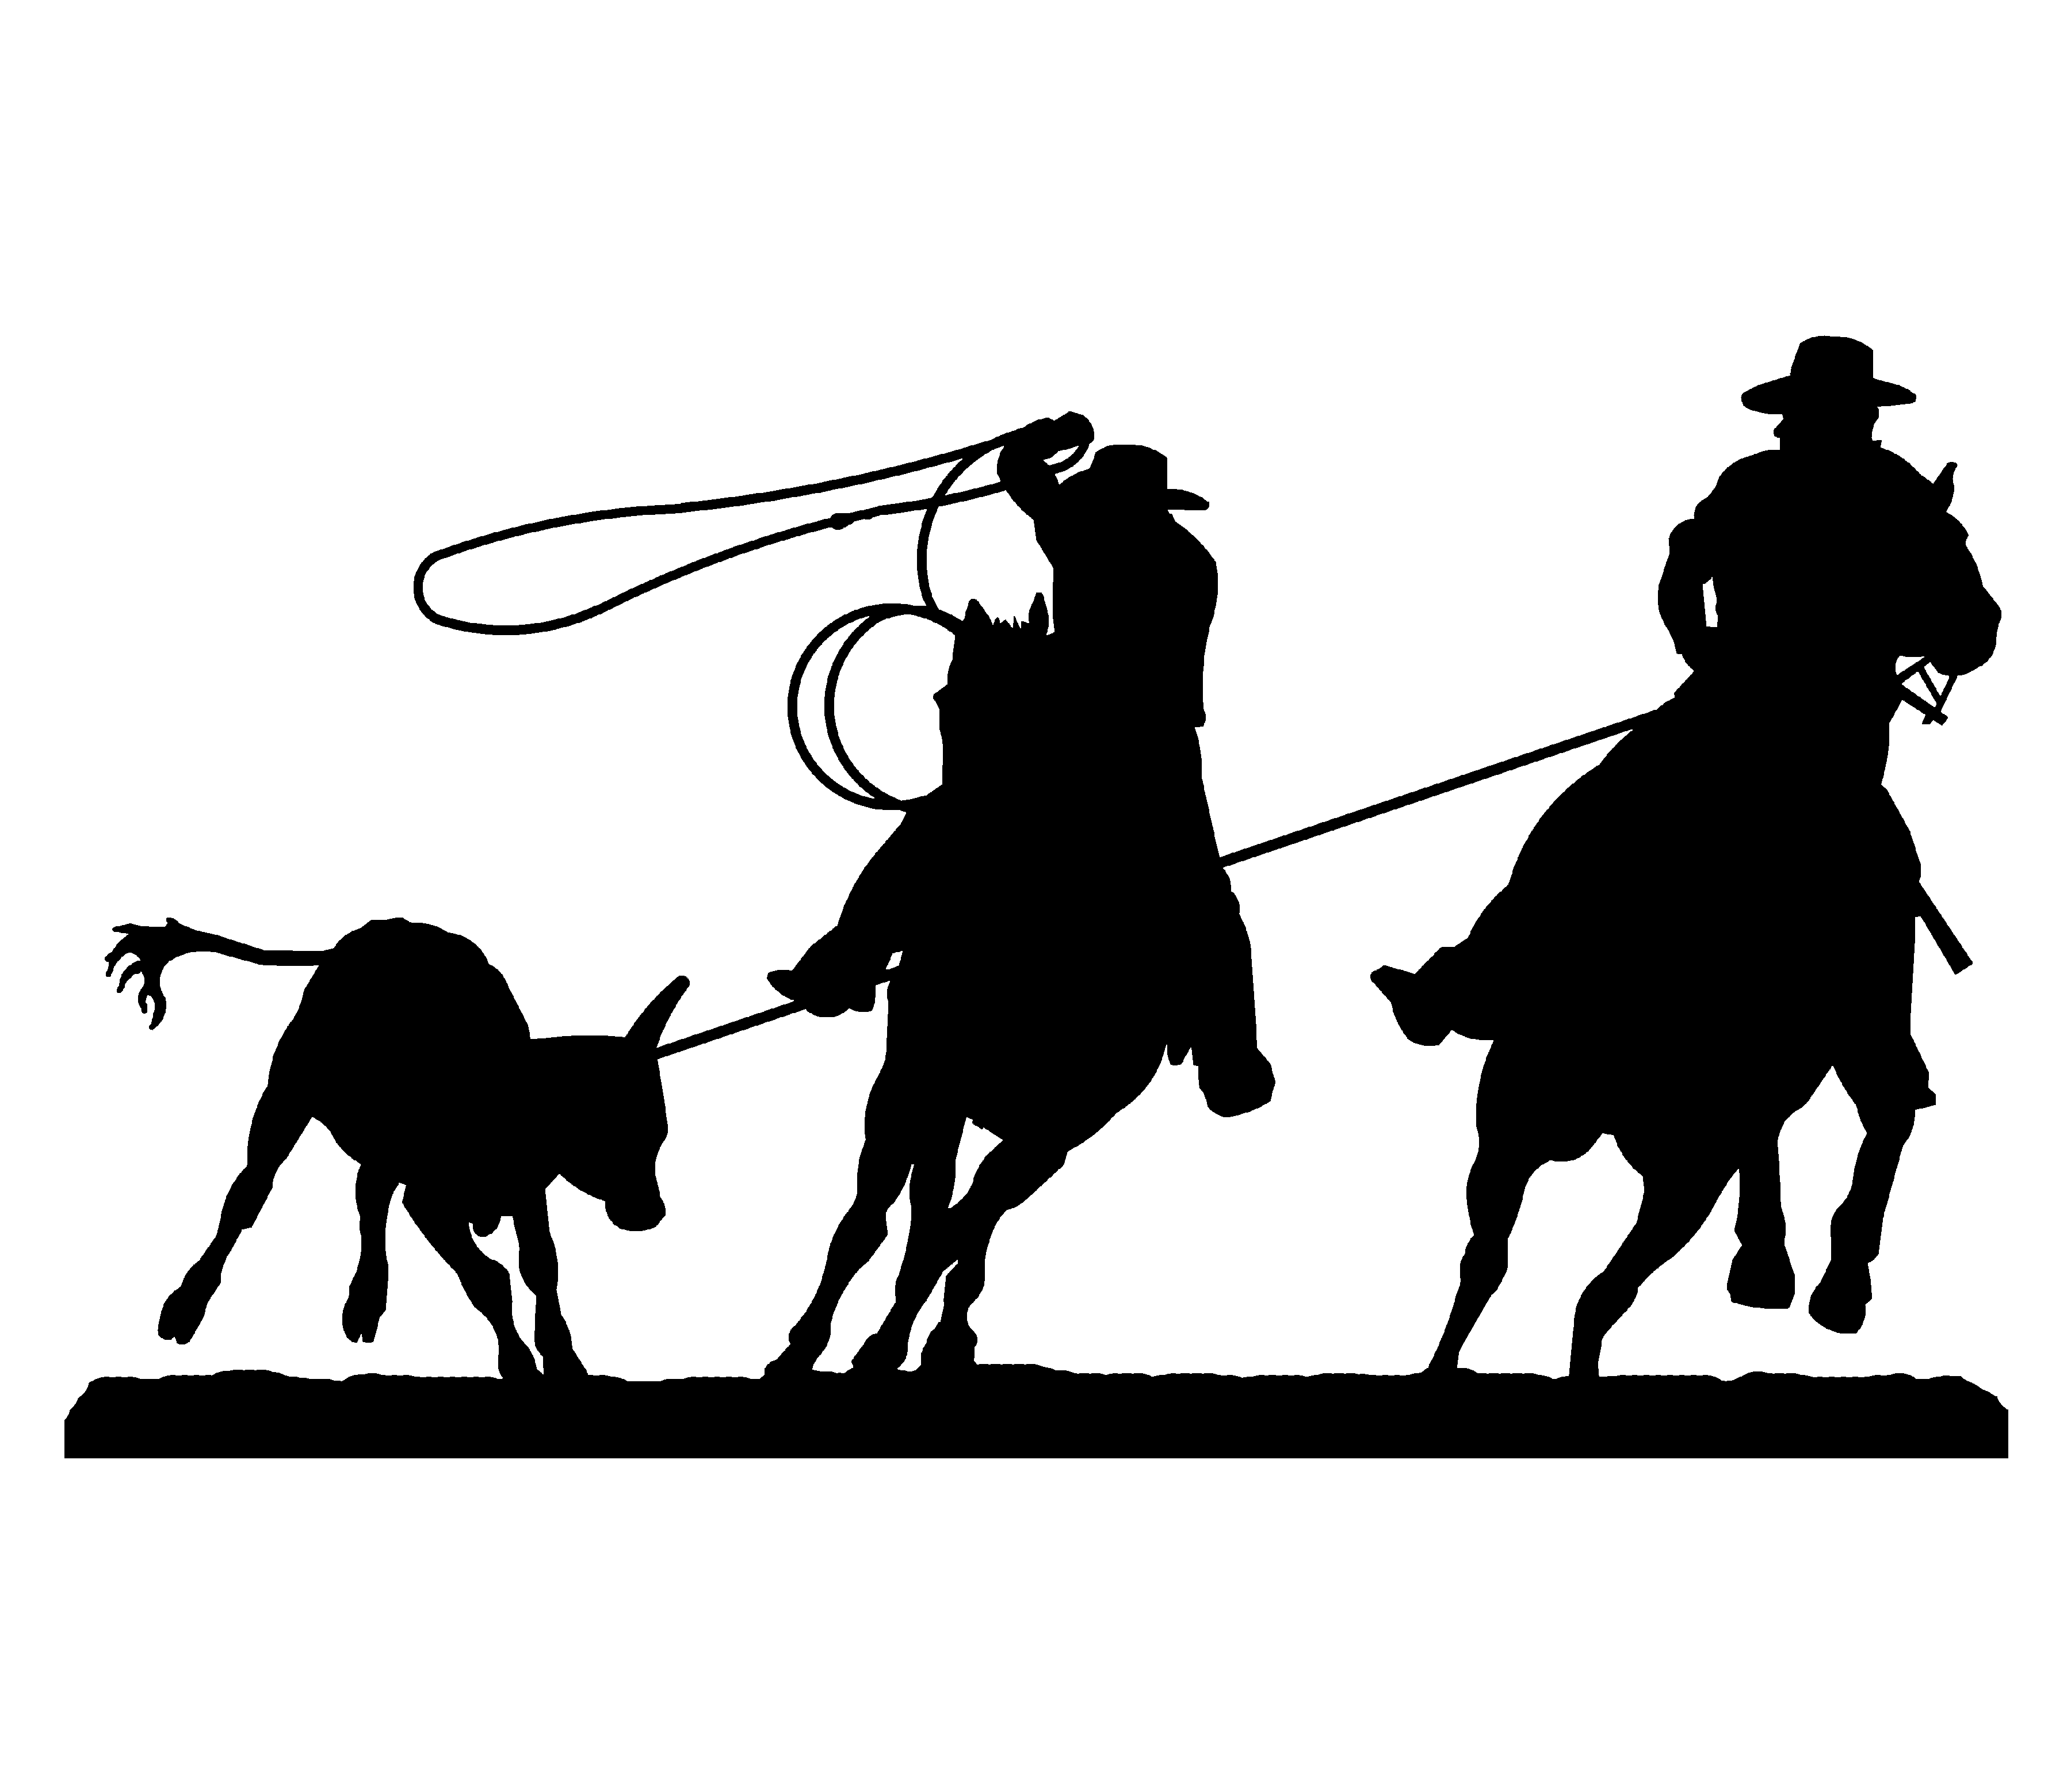 team roping silhouette embroidery designs silhouette Team Roping Vector Art team roping clipart